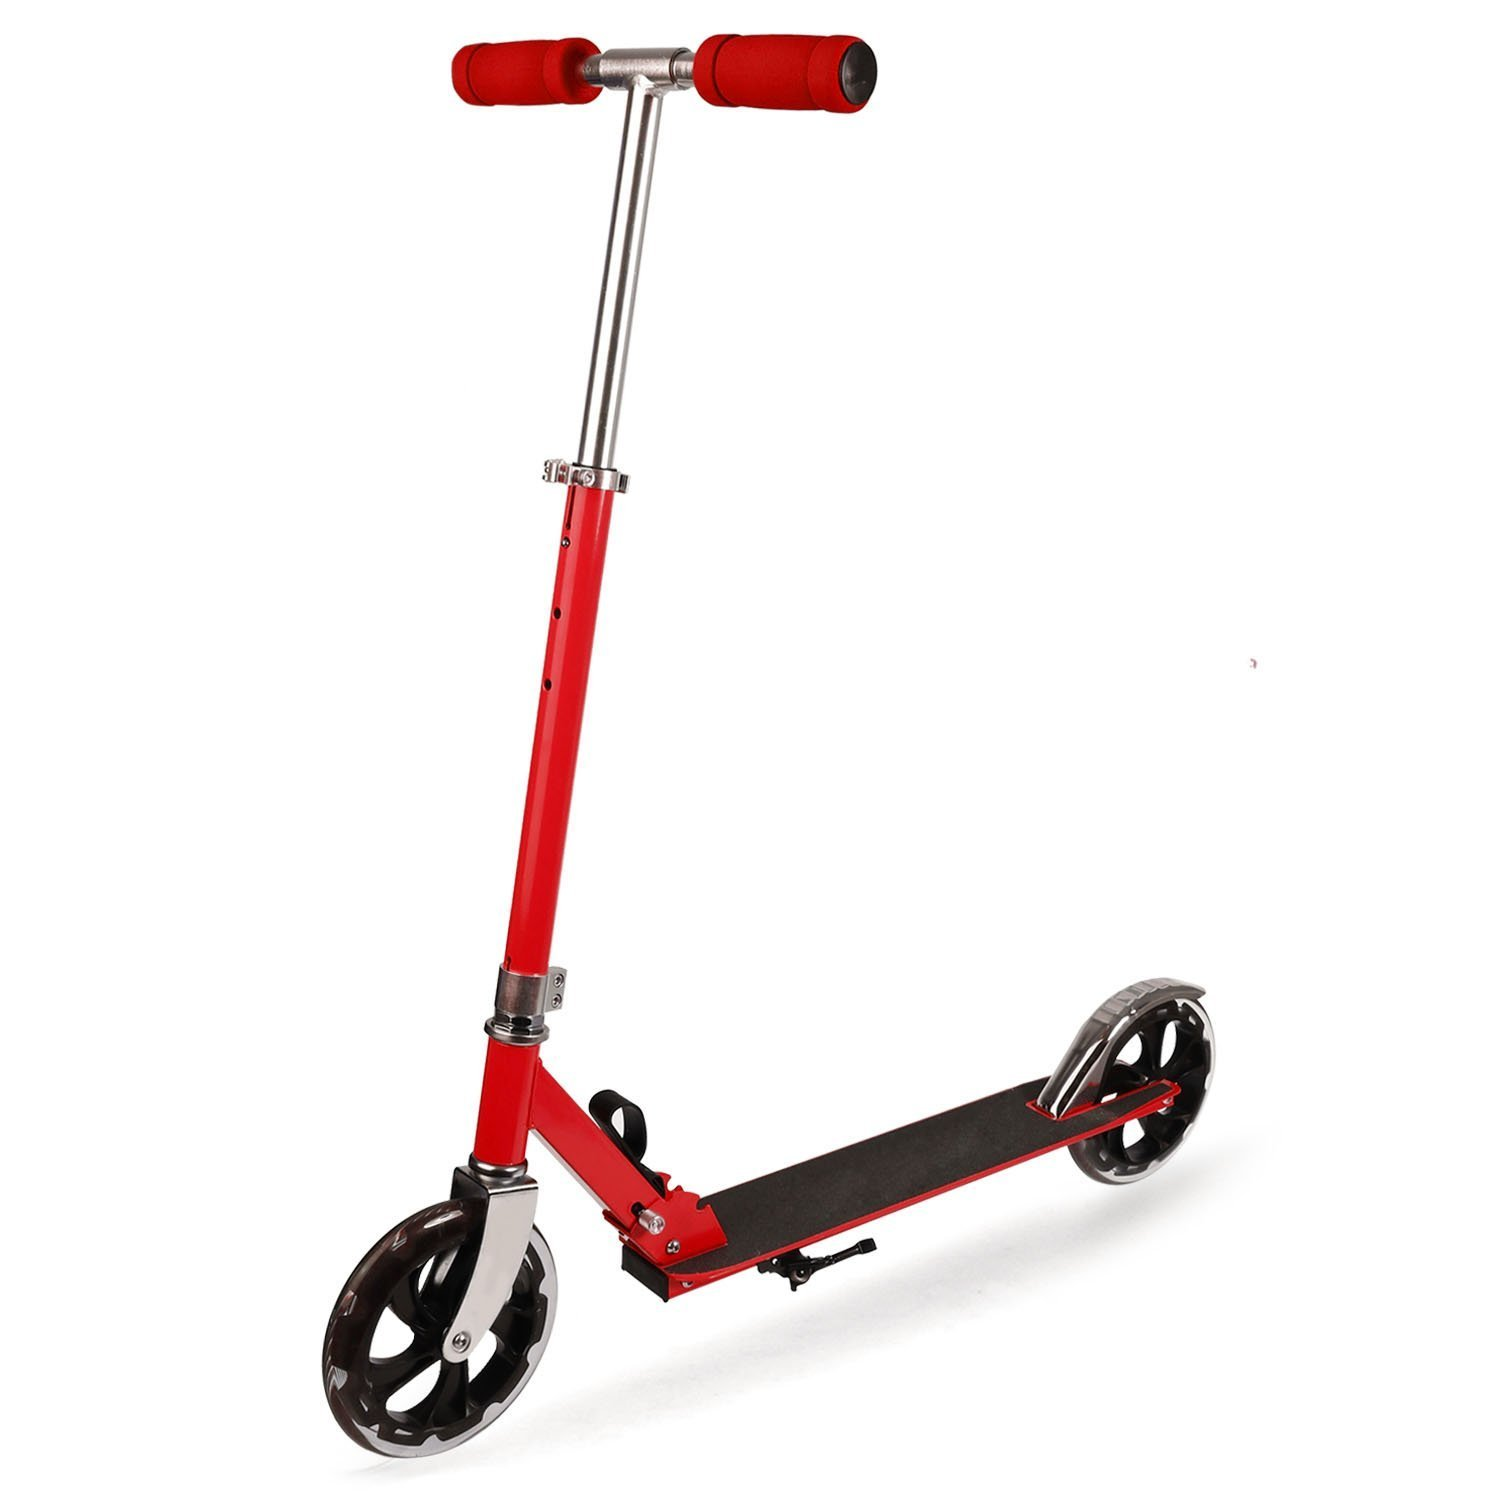 Folding Adult Kick Scooter - Height Adjustable - Commuter Street Push Scooter for Teens - Smooth & Fast Ride, 200 lbs Weight Capacity